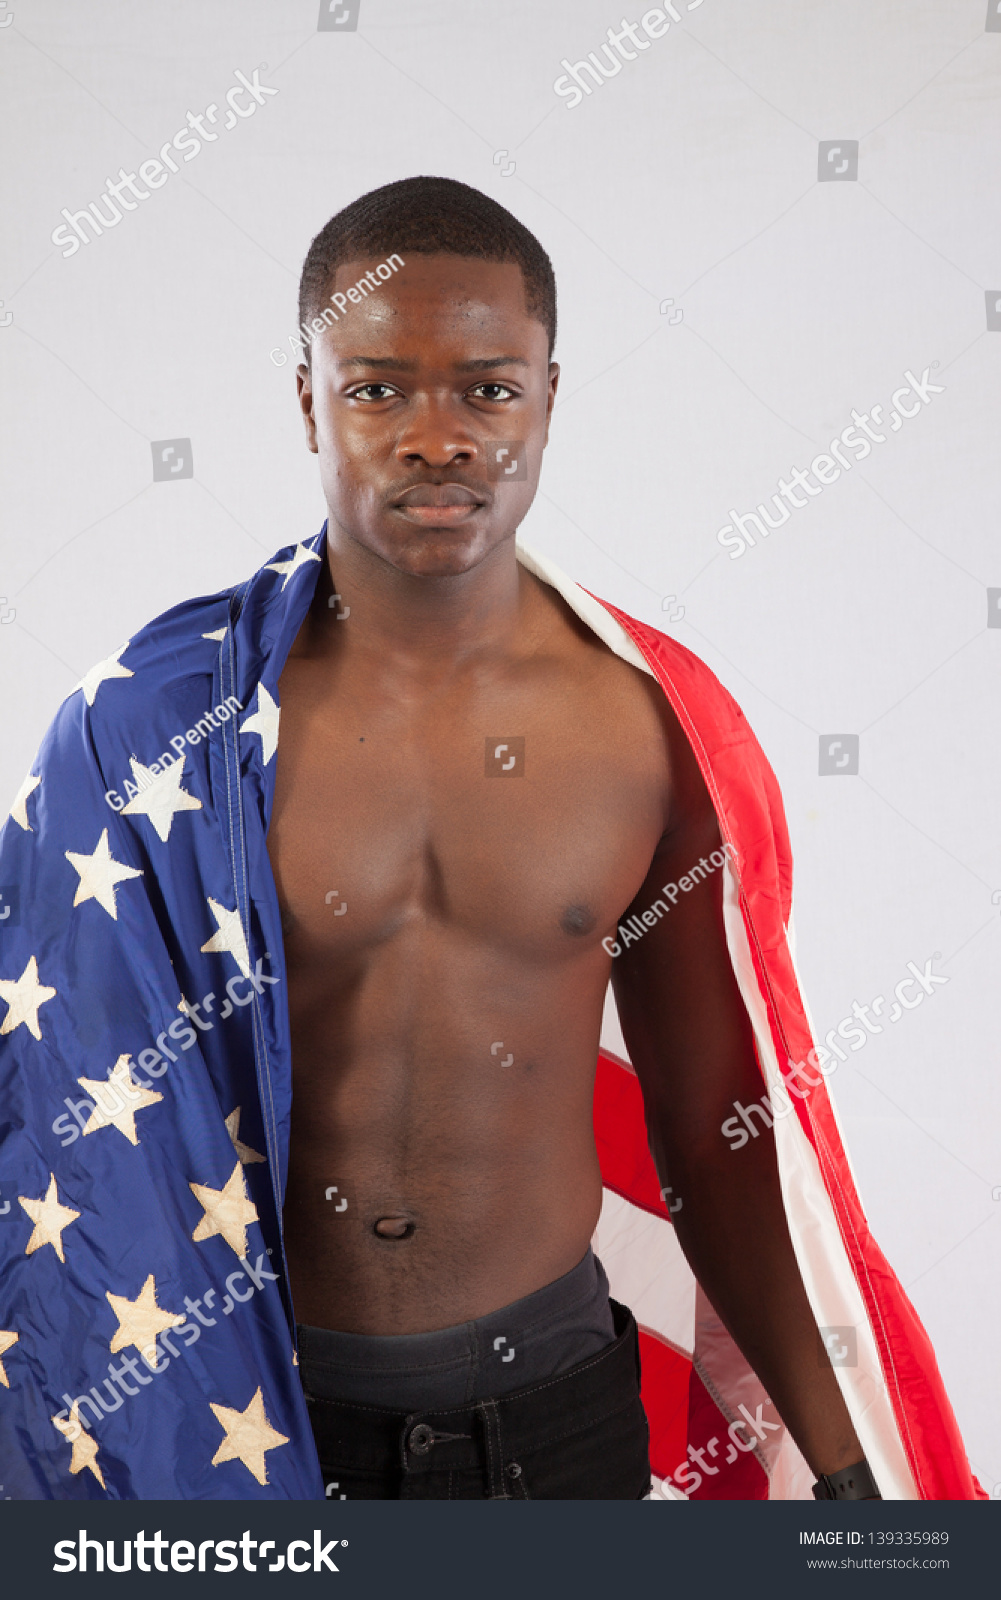 Royalty Free Serious Black Man With No Shirt On 139335989 Stock